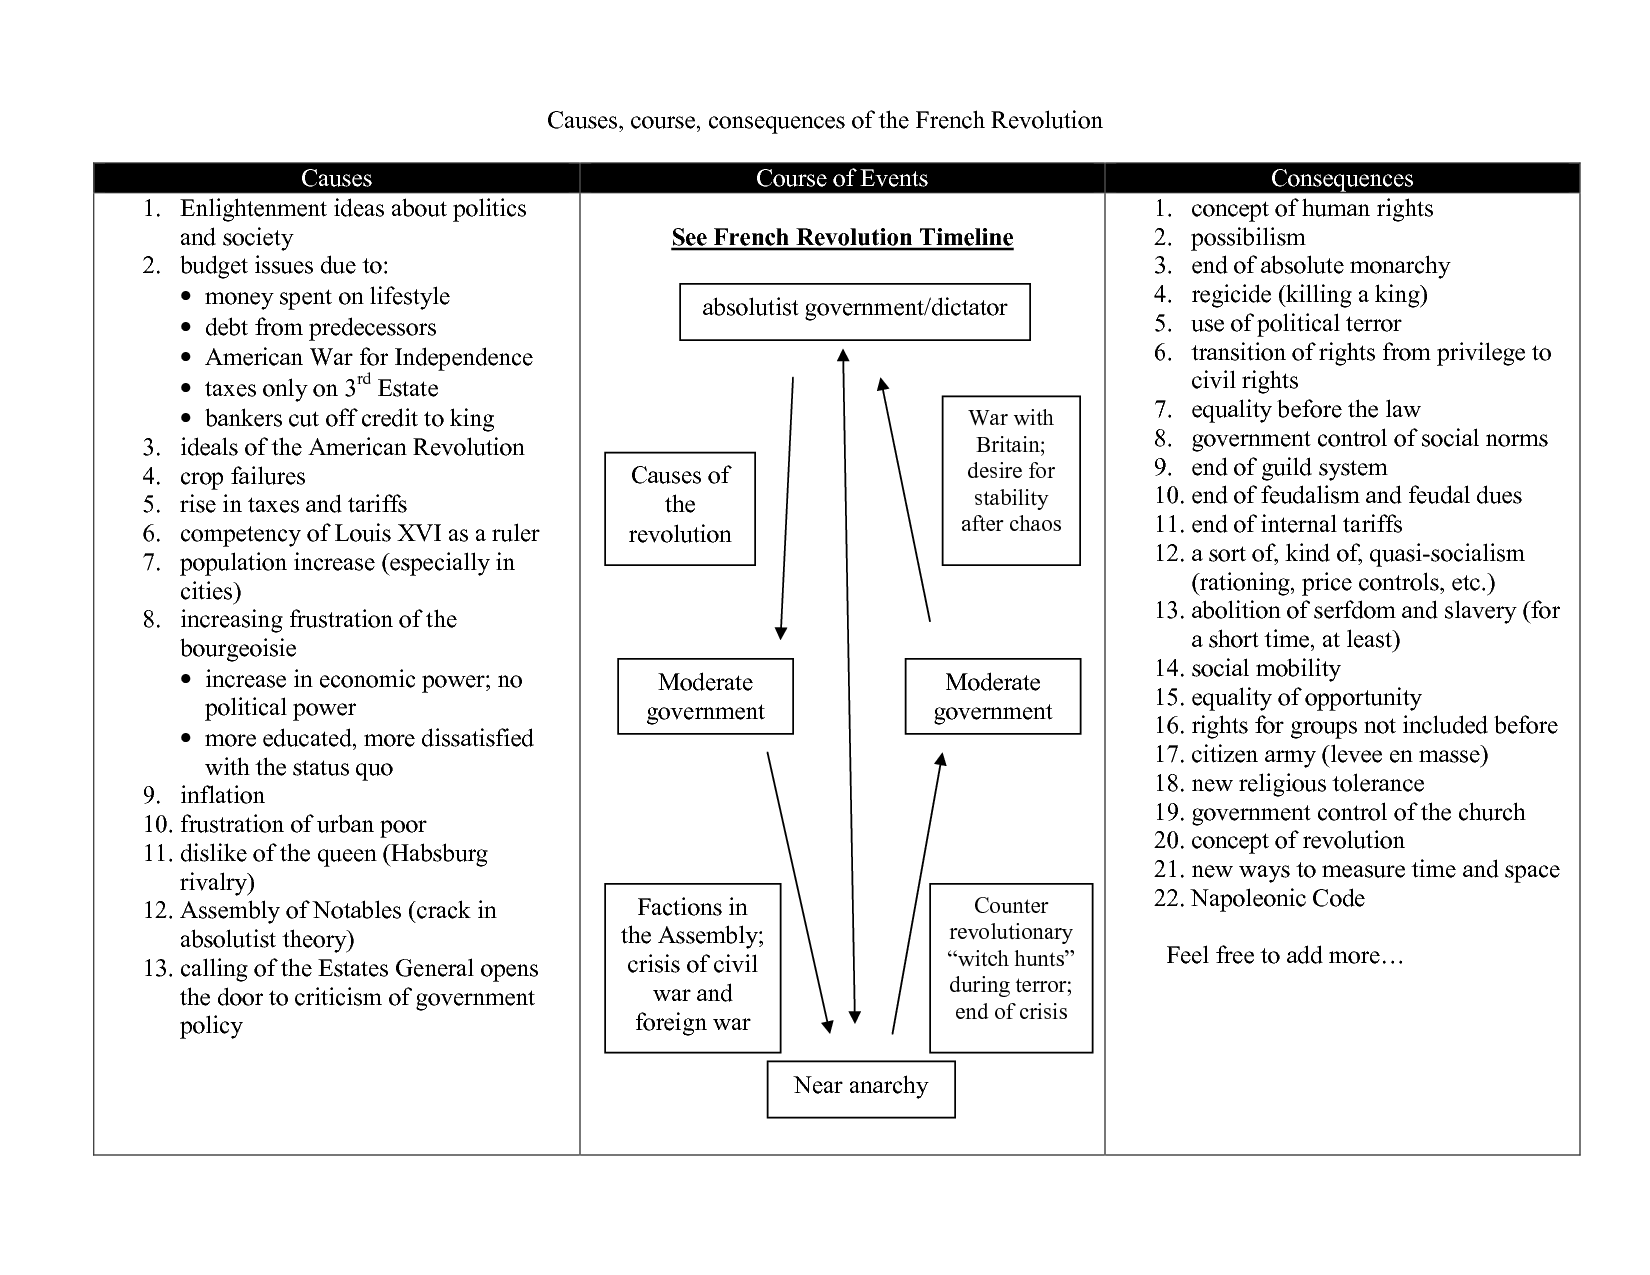 Worksheets American Revolution Timeline Worksheet french revolution timeline causes course consequences of the causes